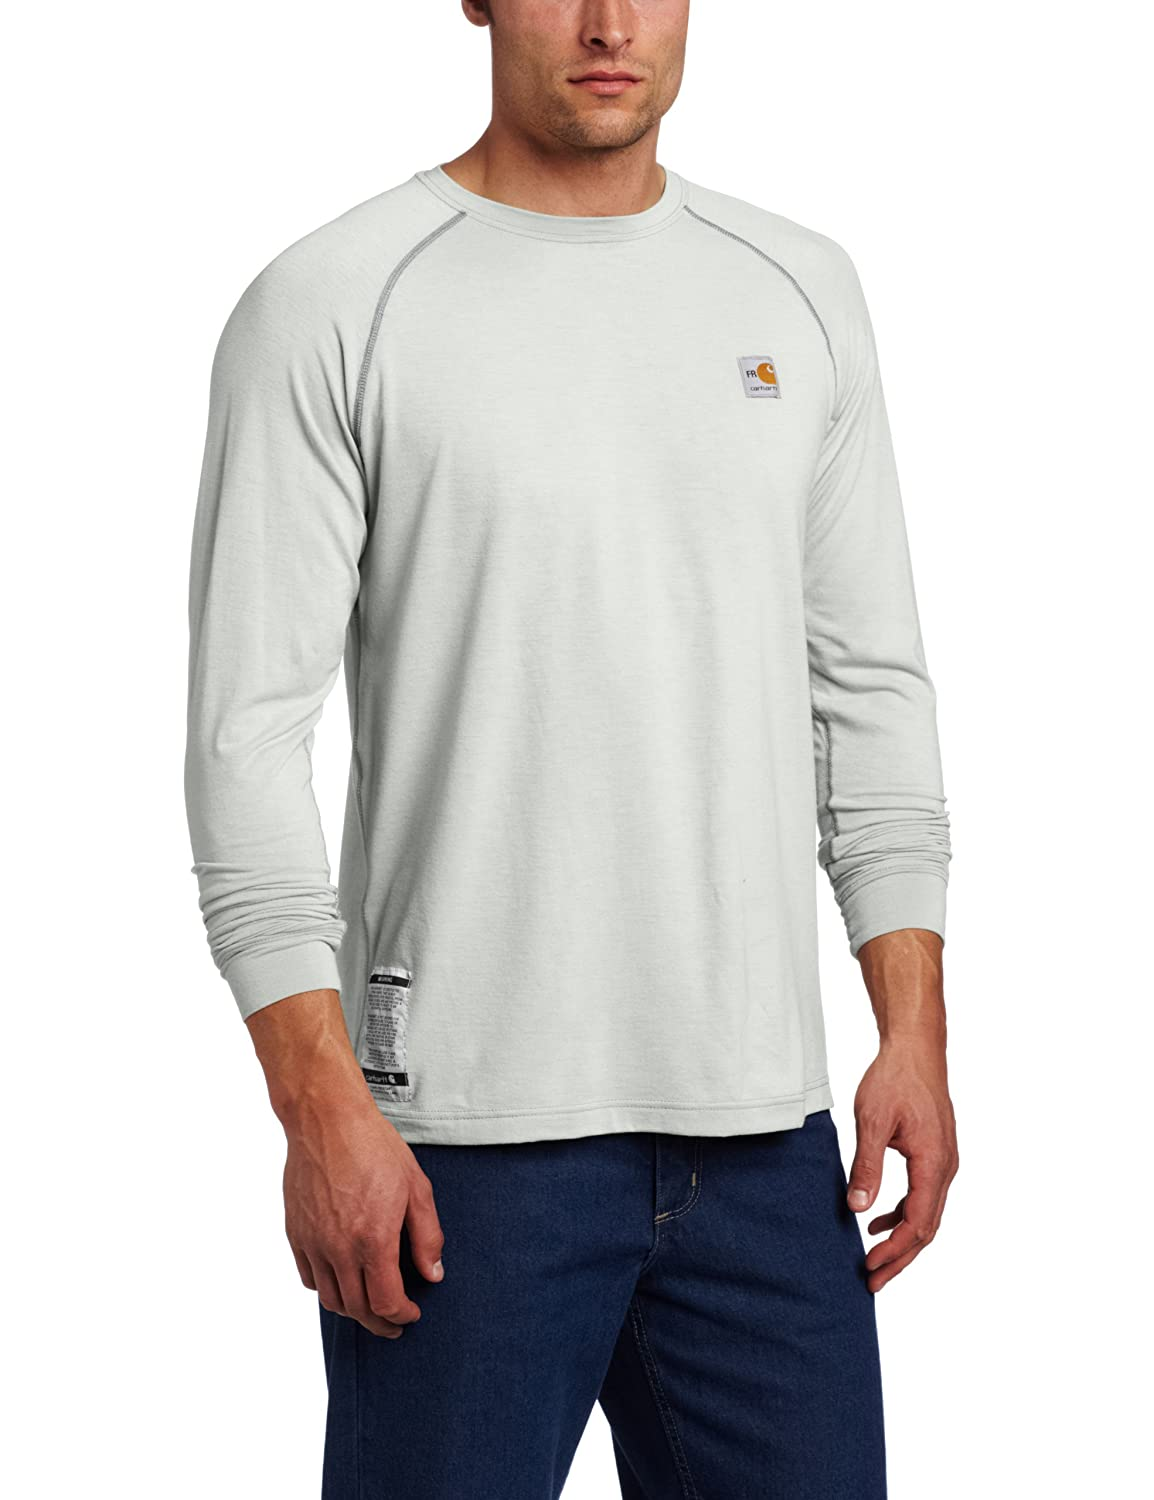 62142353c54f Amazon.com  Carhartt Men s Big   Tall Flame Resistant Force Long Sleeve T- Shirt  Work Utility Shirts  Clothing